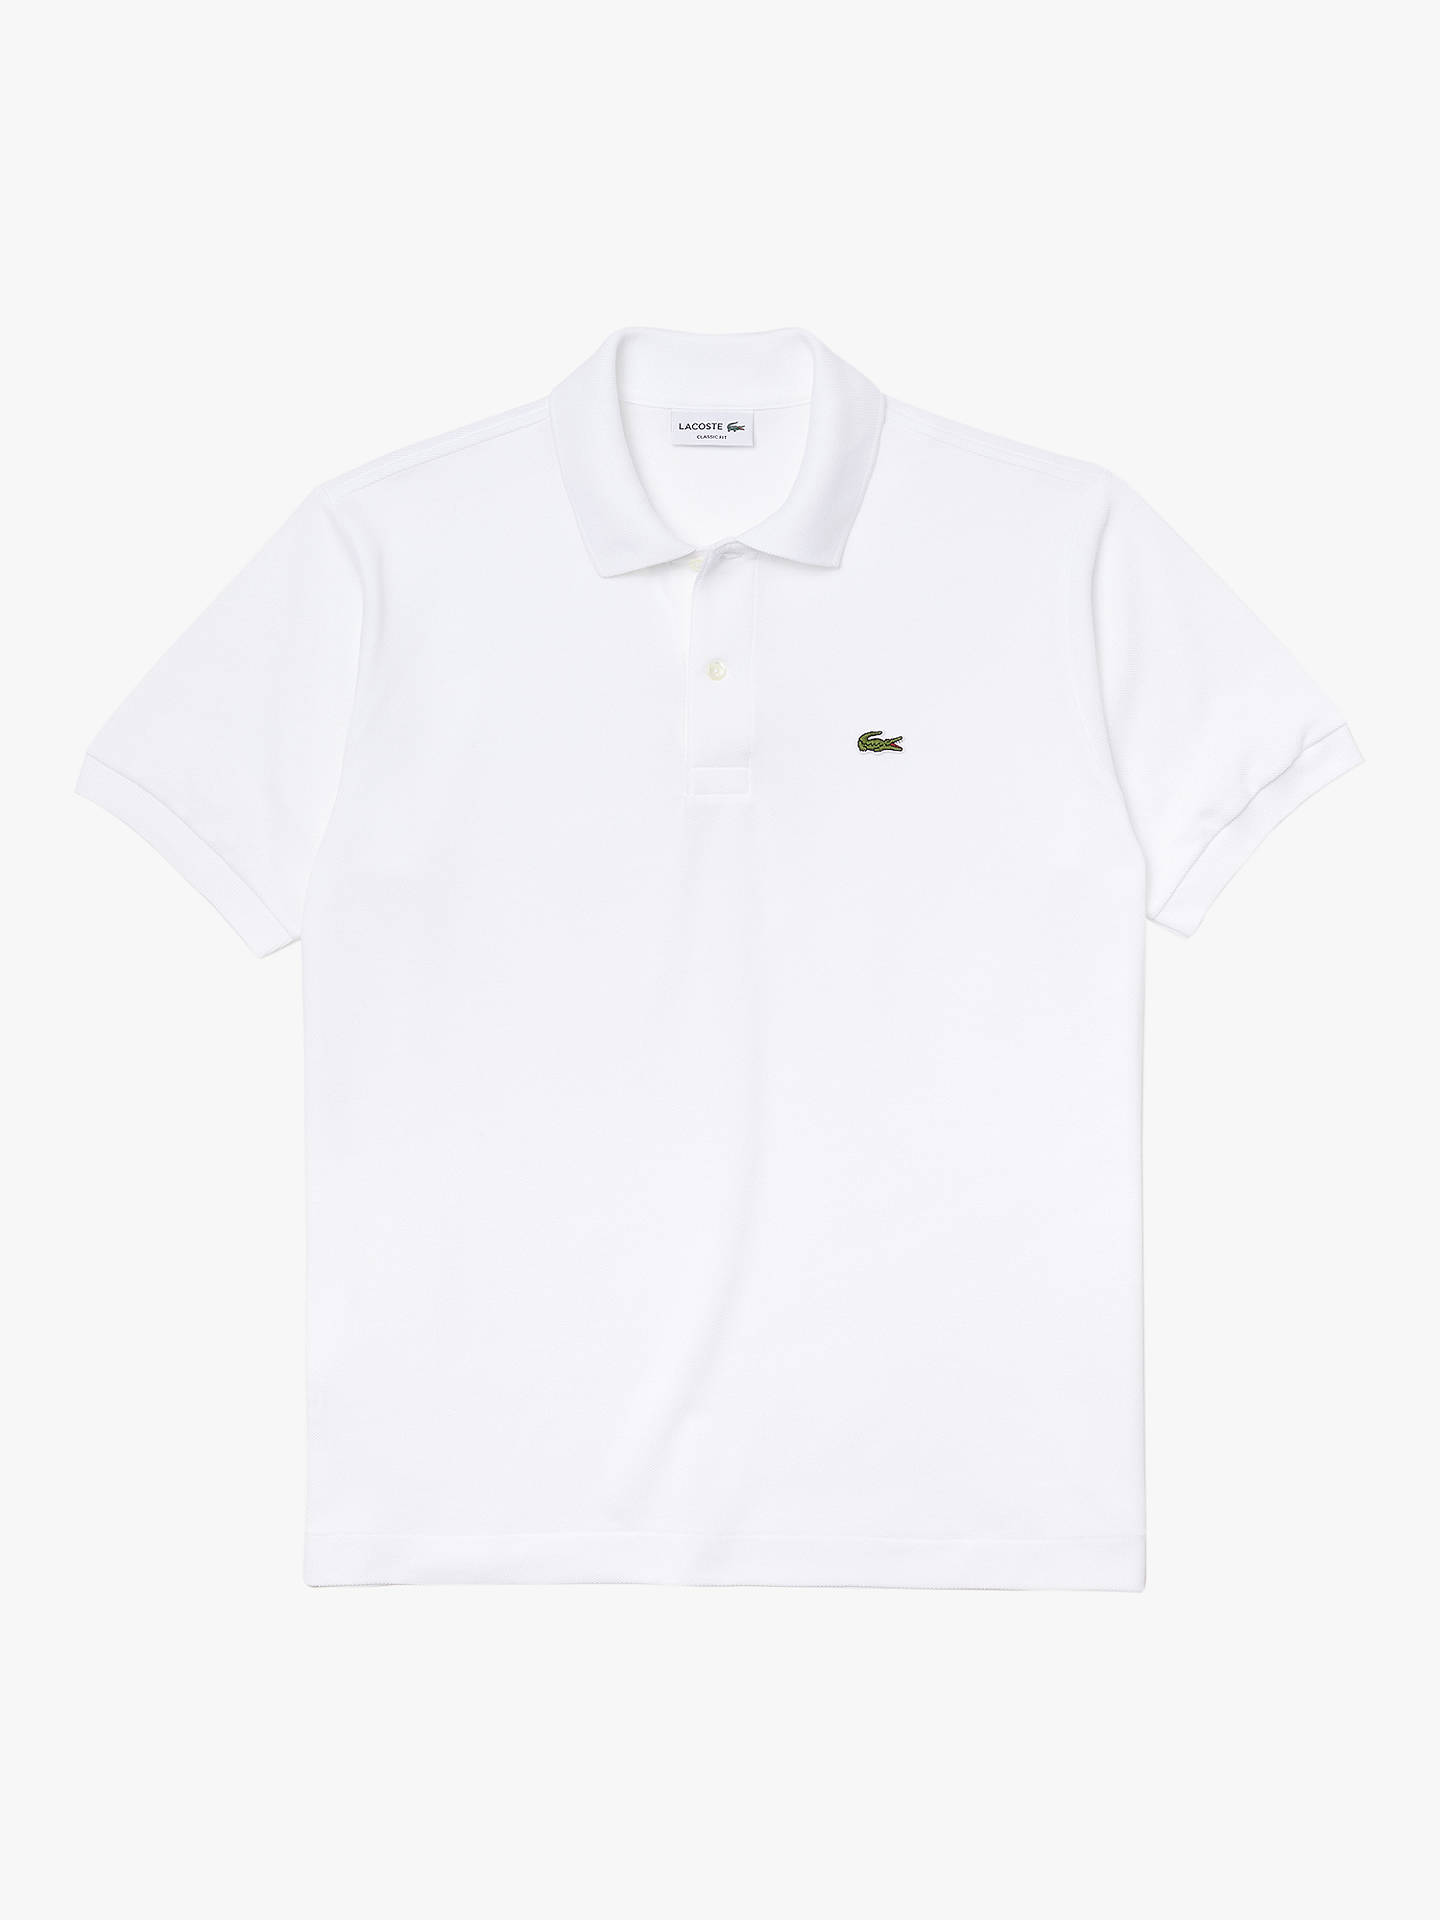 2c9a69958f Lacoste L.12.12 Classic Regular Fit Short Sleeve Polo Shirt, White